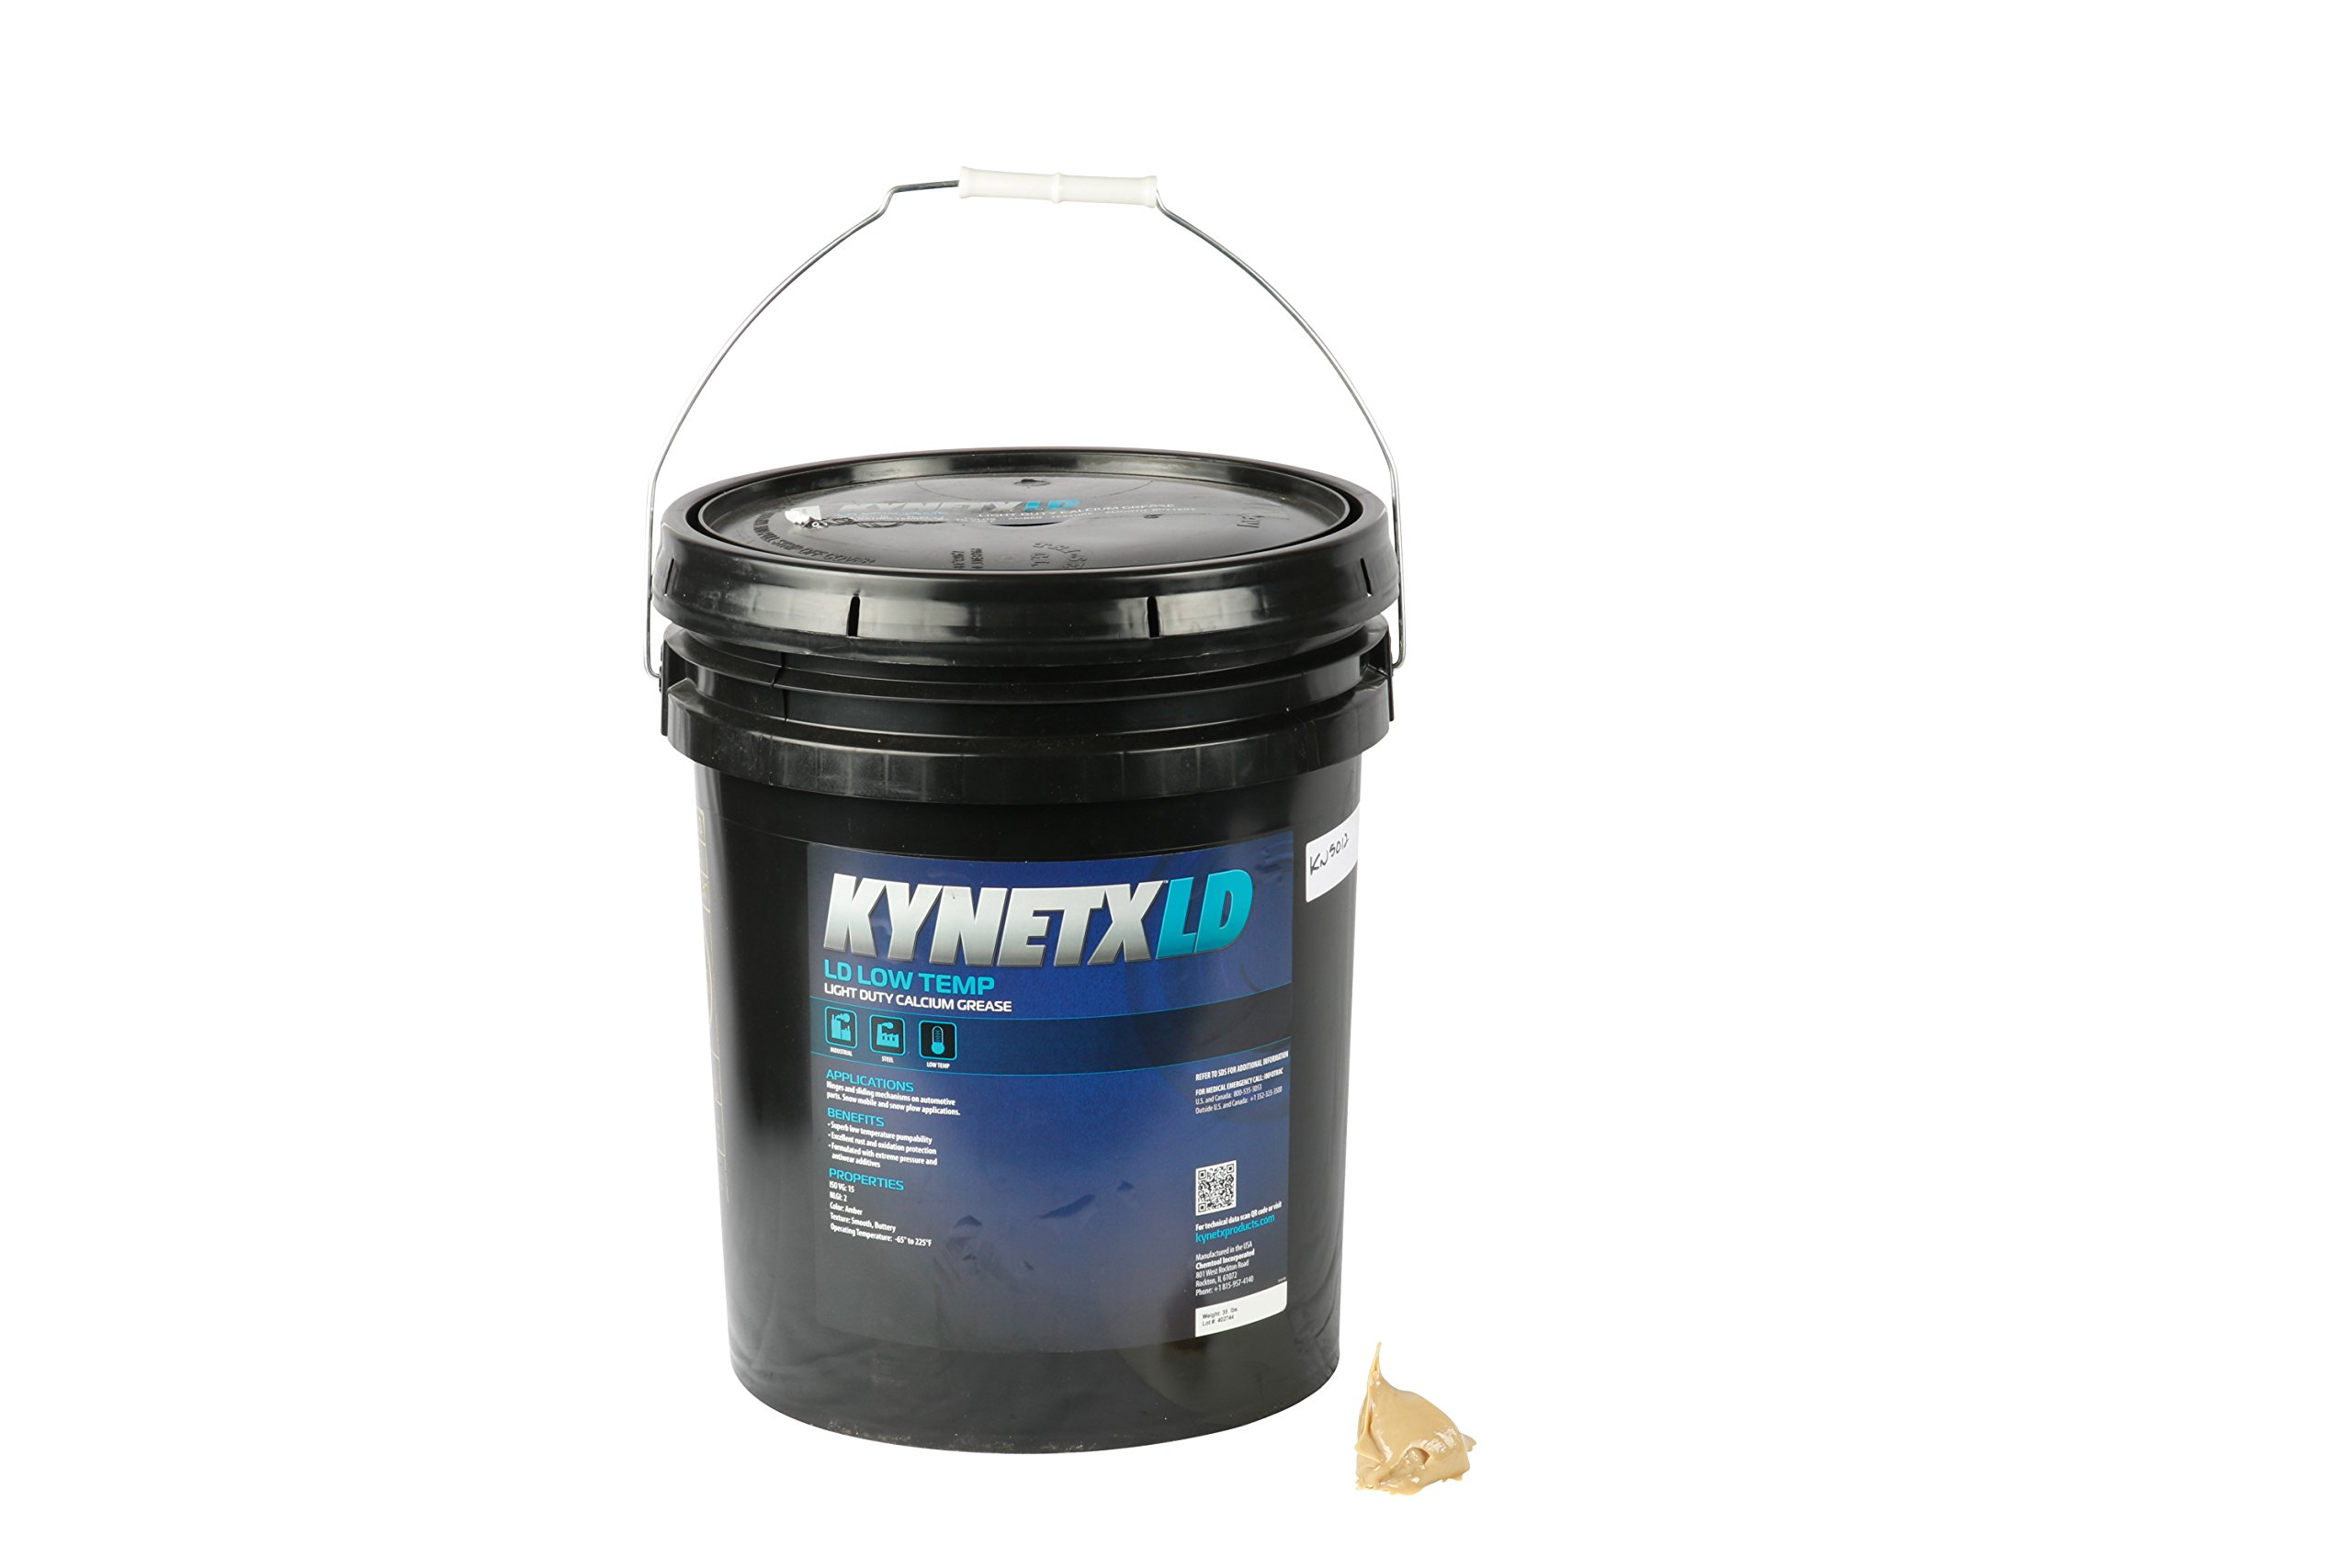 Kynetx Calcium Grease, LD Low Temp, 35 Lb. Pail, CAN2053000-KN5012, Light Duty Rust Protection, Anti-Wear, Extreme Pressure, Low Temperature Pump Ability. Automotive Grease, ISO VG 15